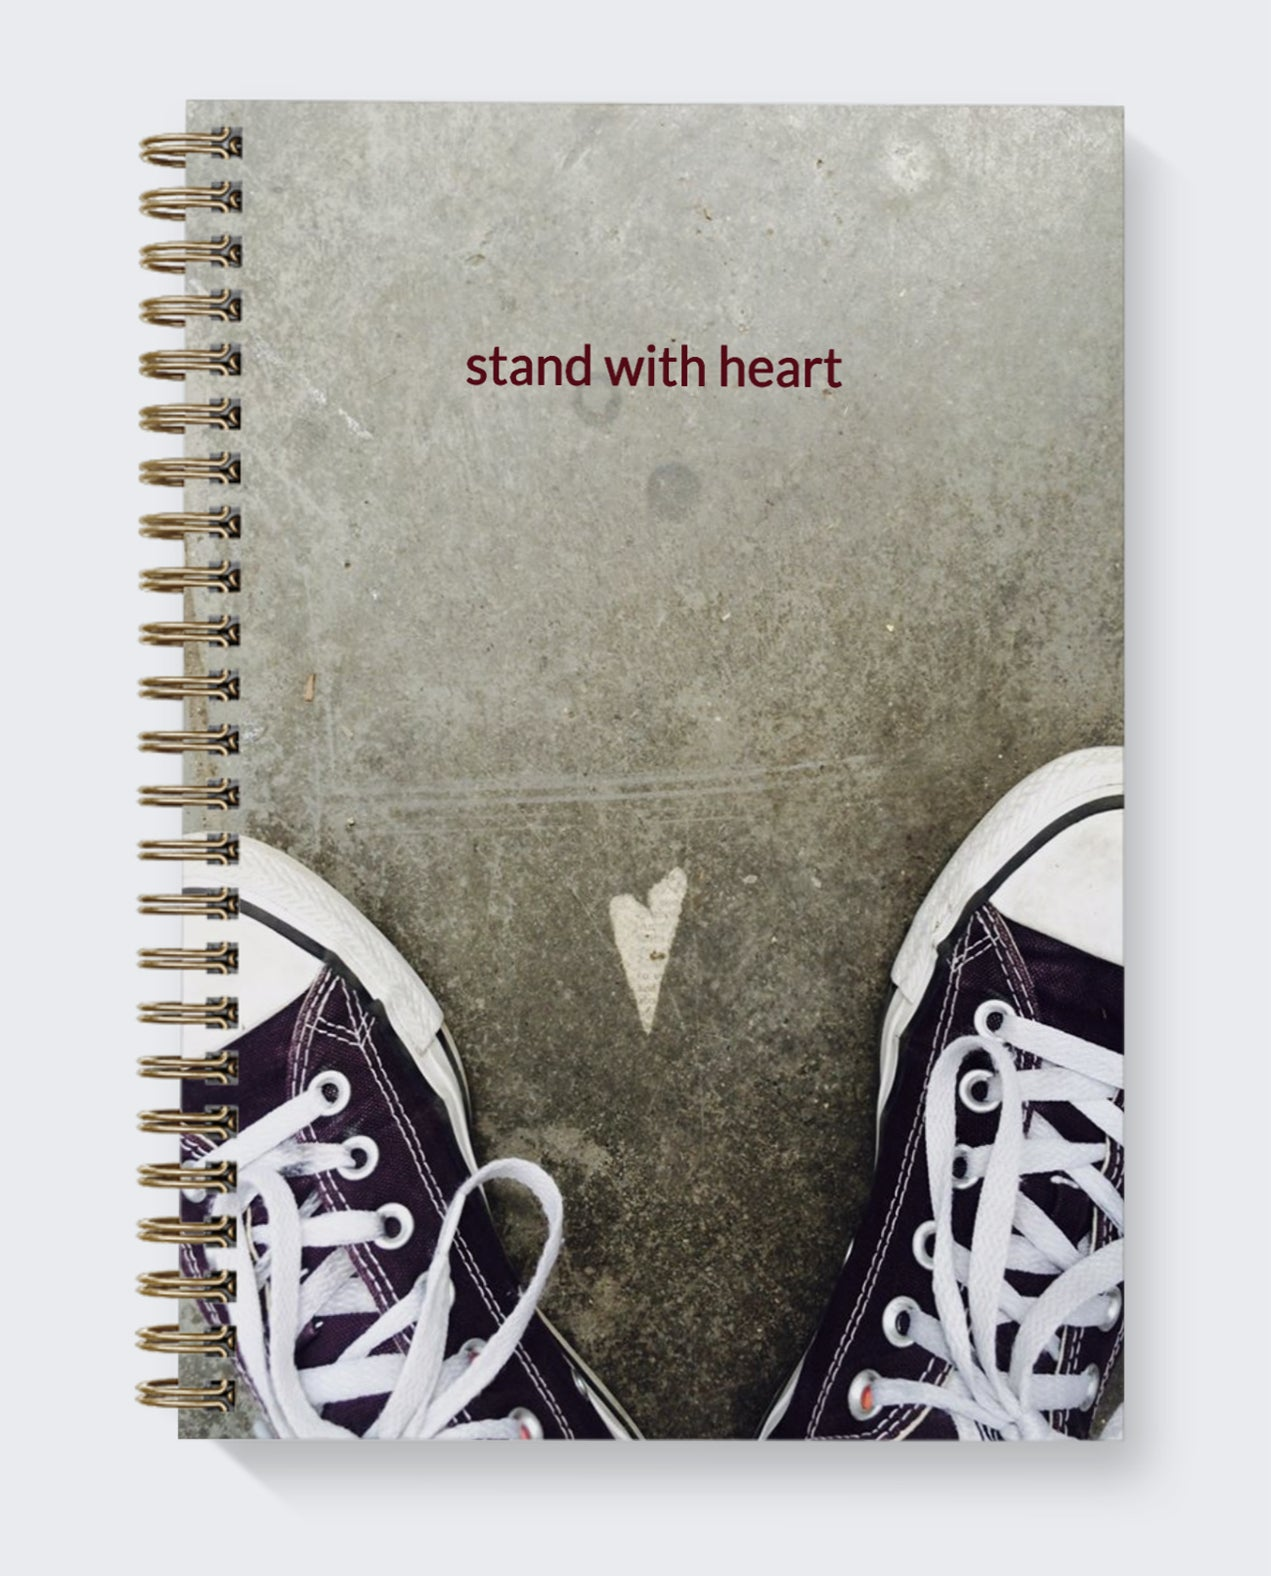 dot journal heart photography original stand with heart purple shoes